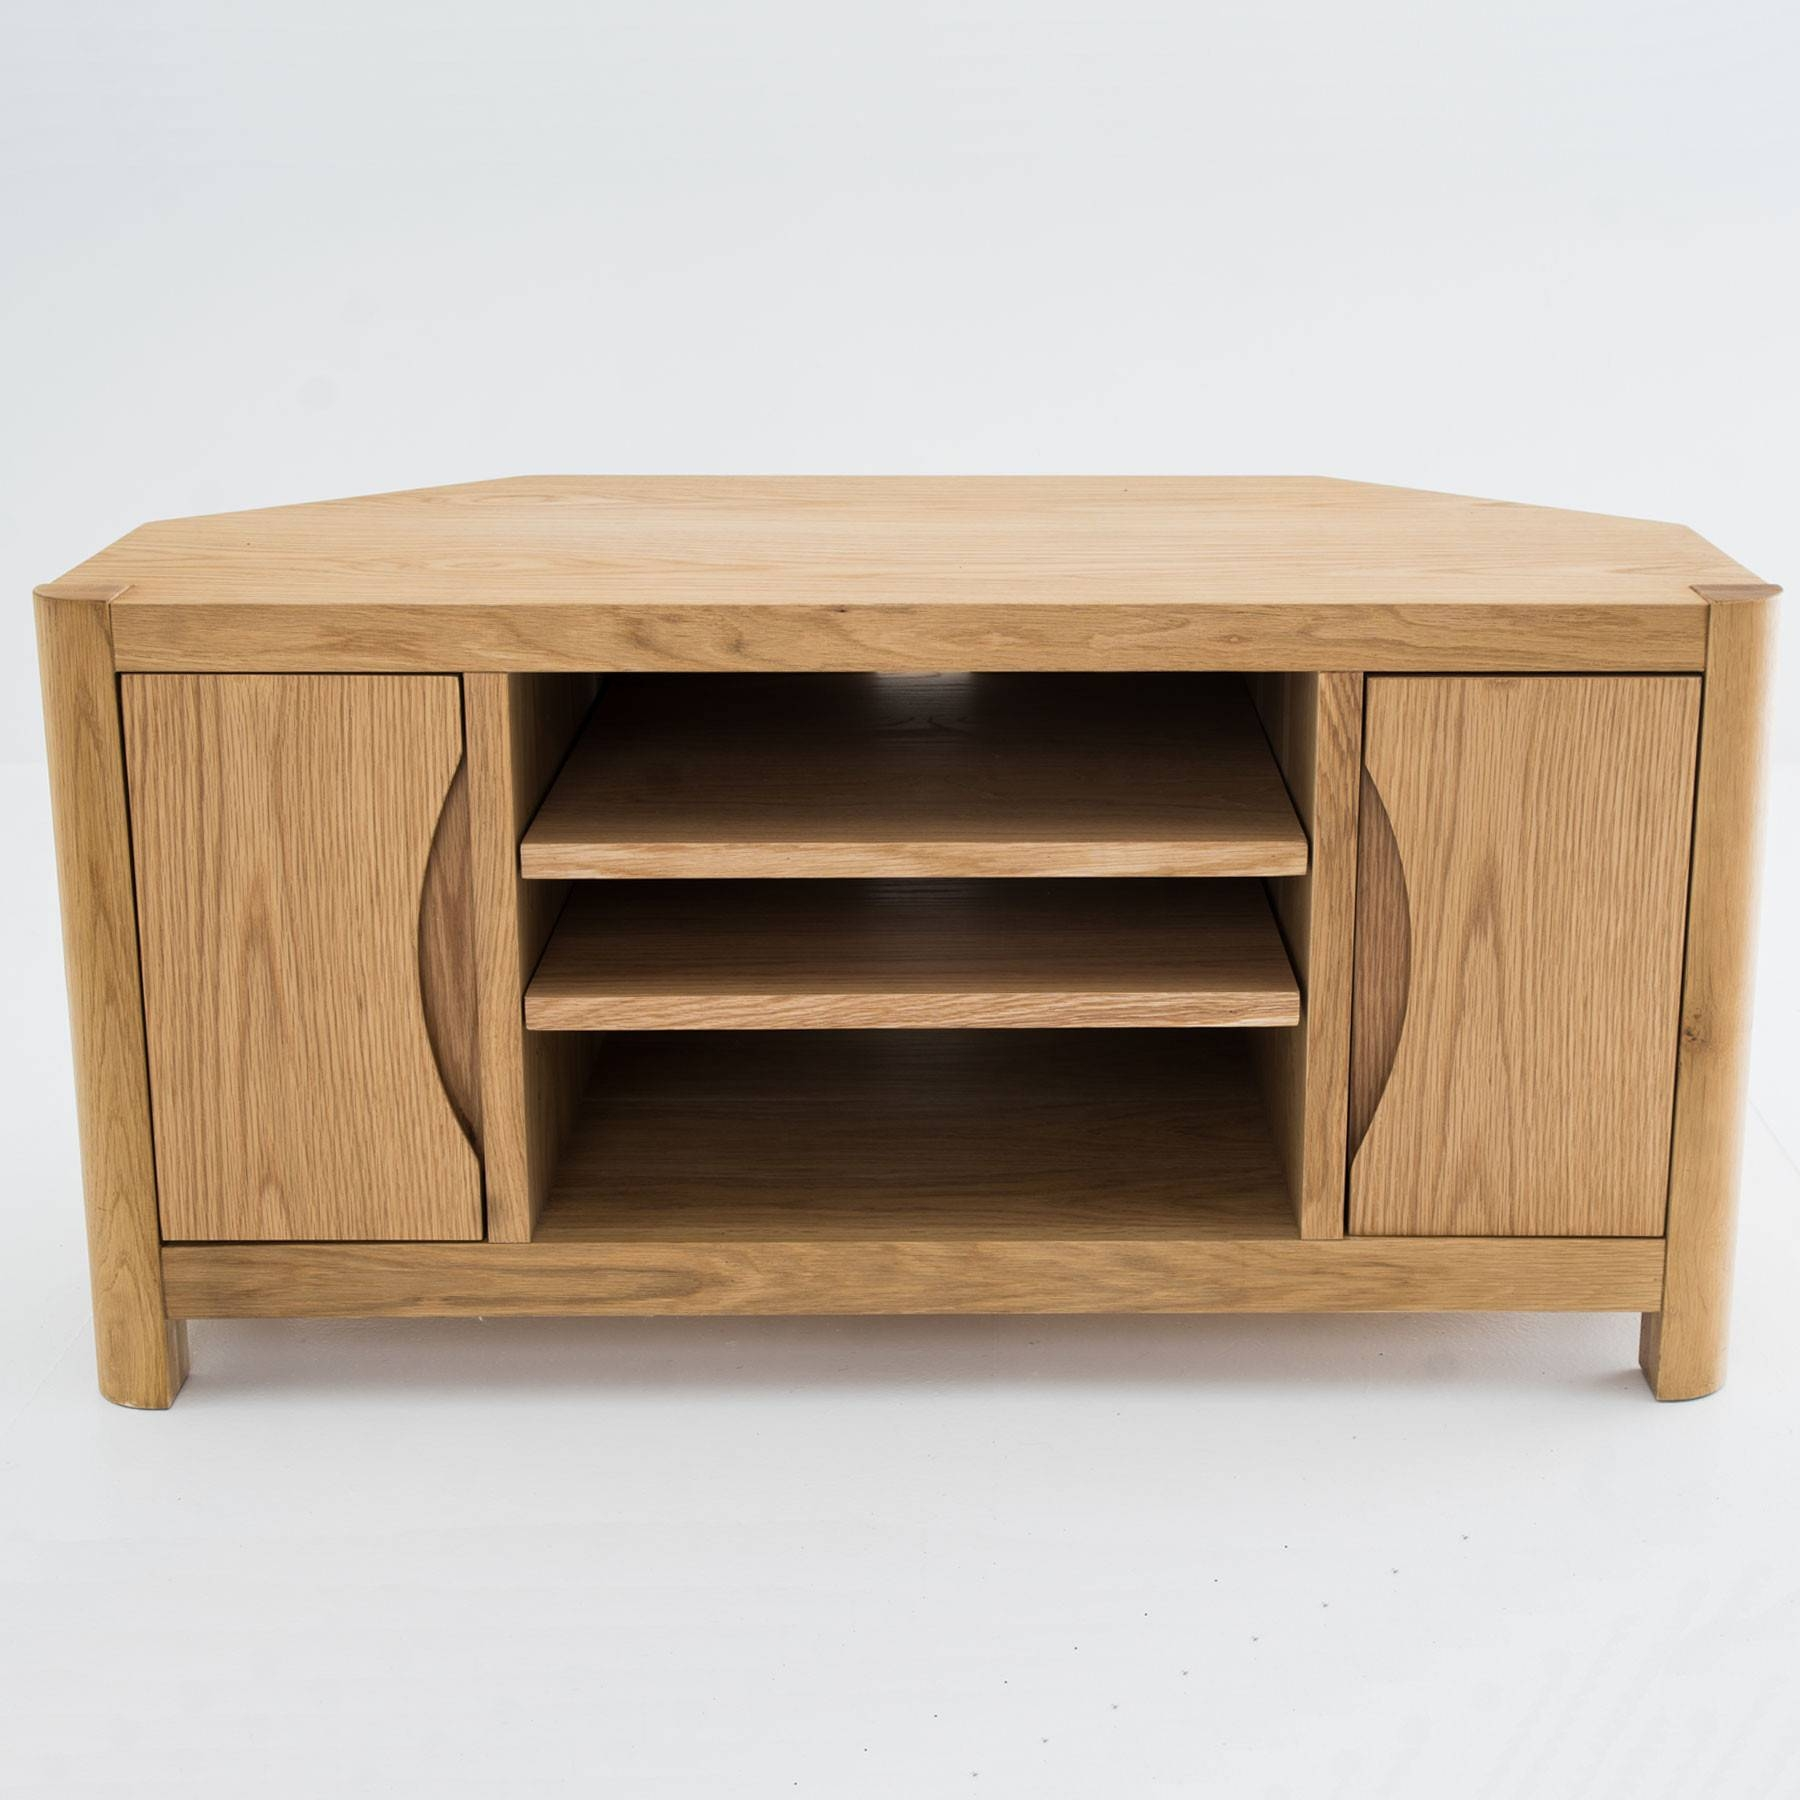 "Oslo Light Oak Corner Tv Stand For Up To 44"" Tvs Throughout Light Oak Corner Tv Cabinets (View 3 of 15)"